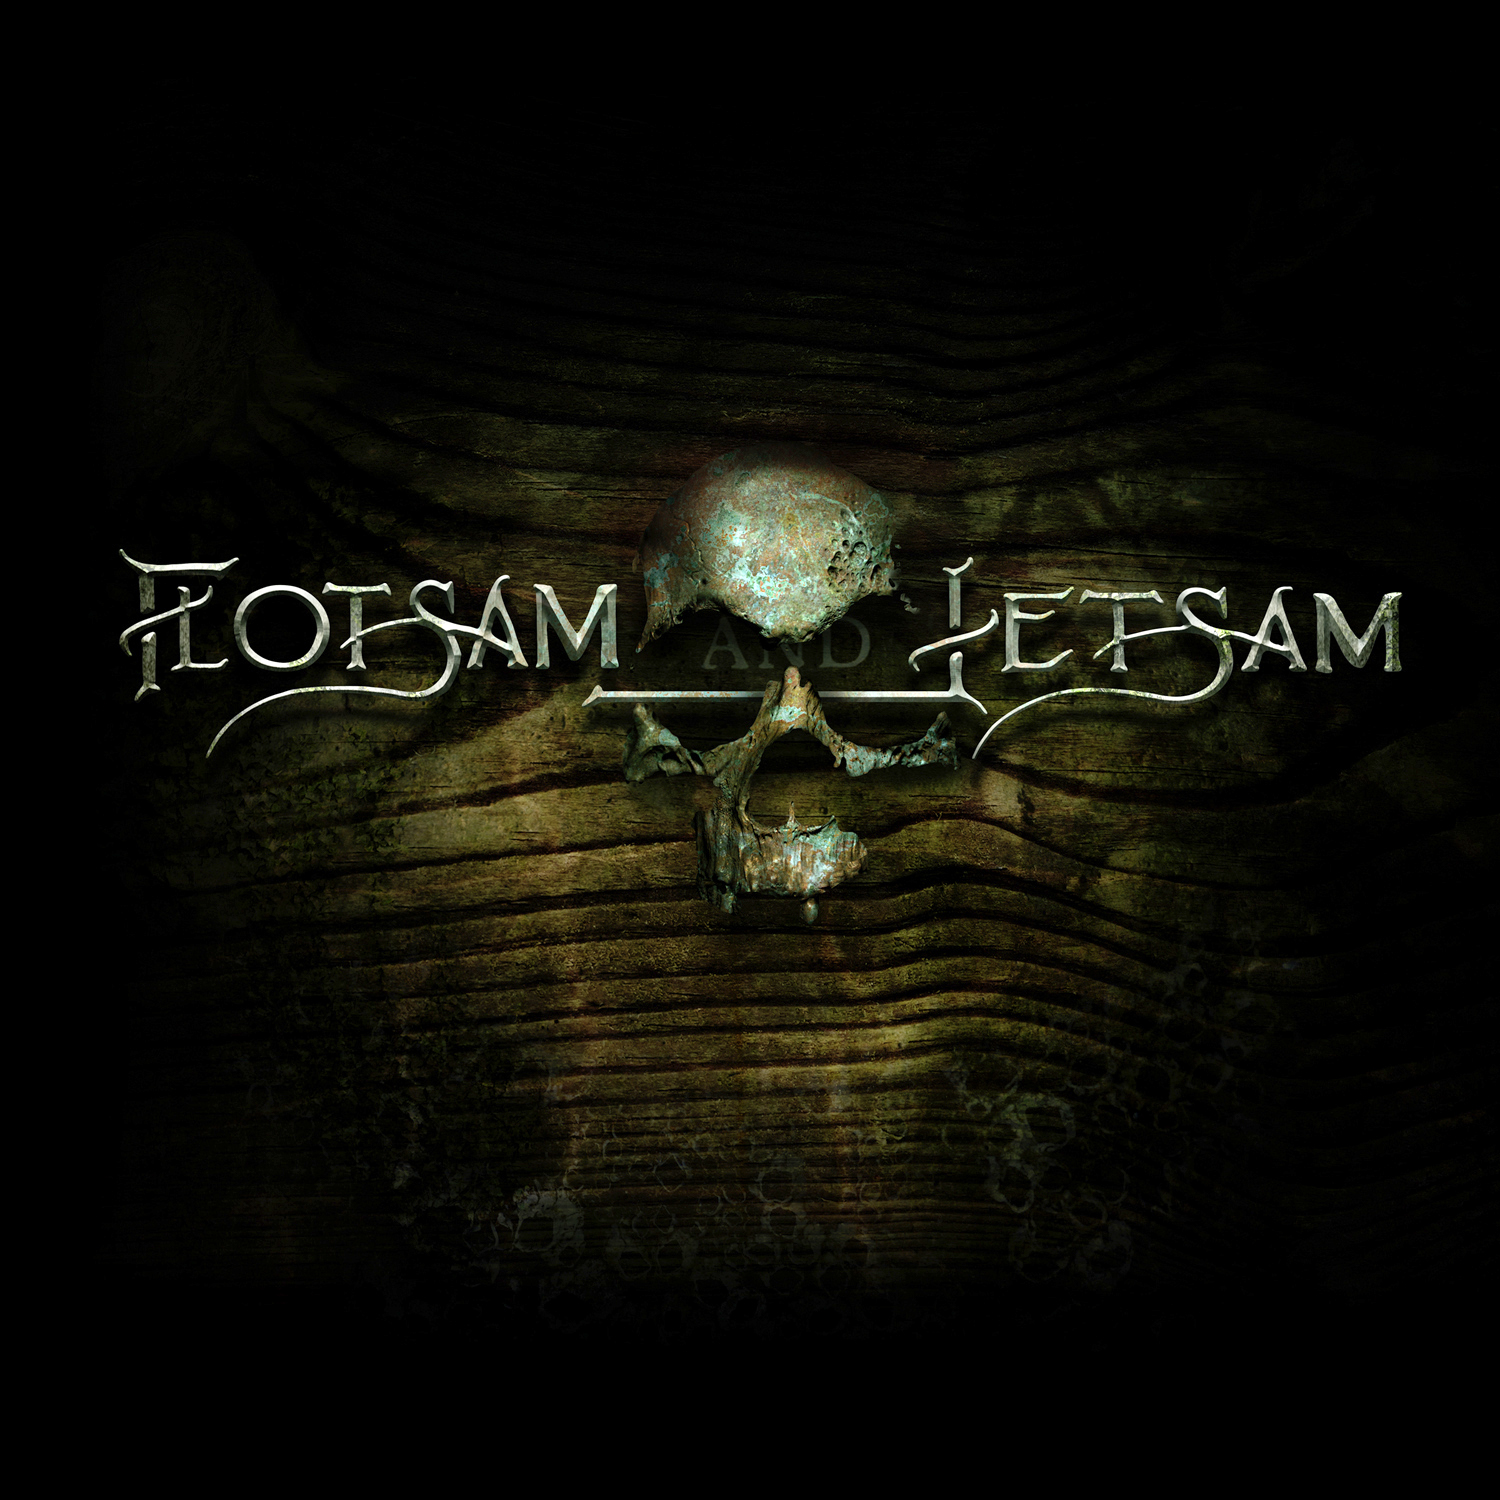 Flotsam & Jetsam – Flotsam & Jetsam CD Review